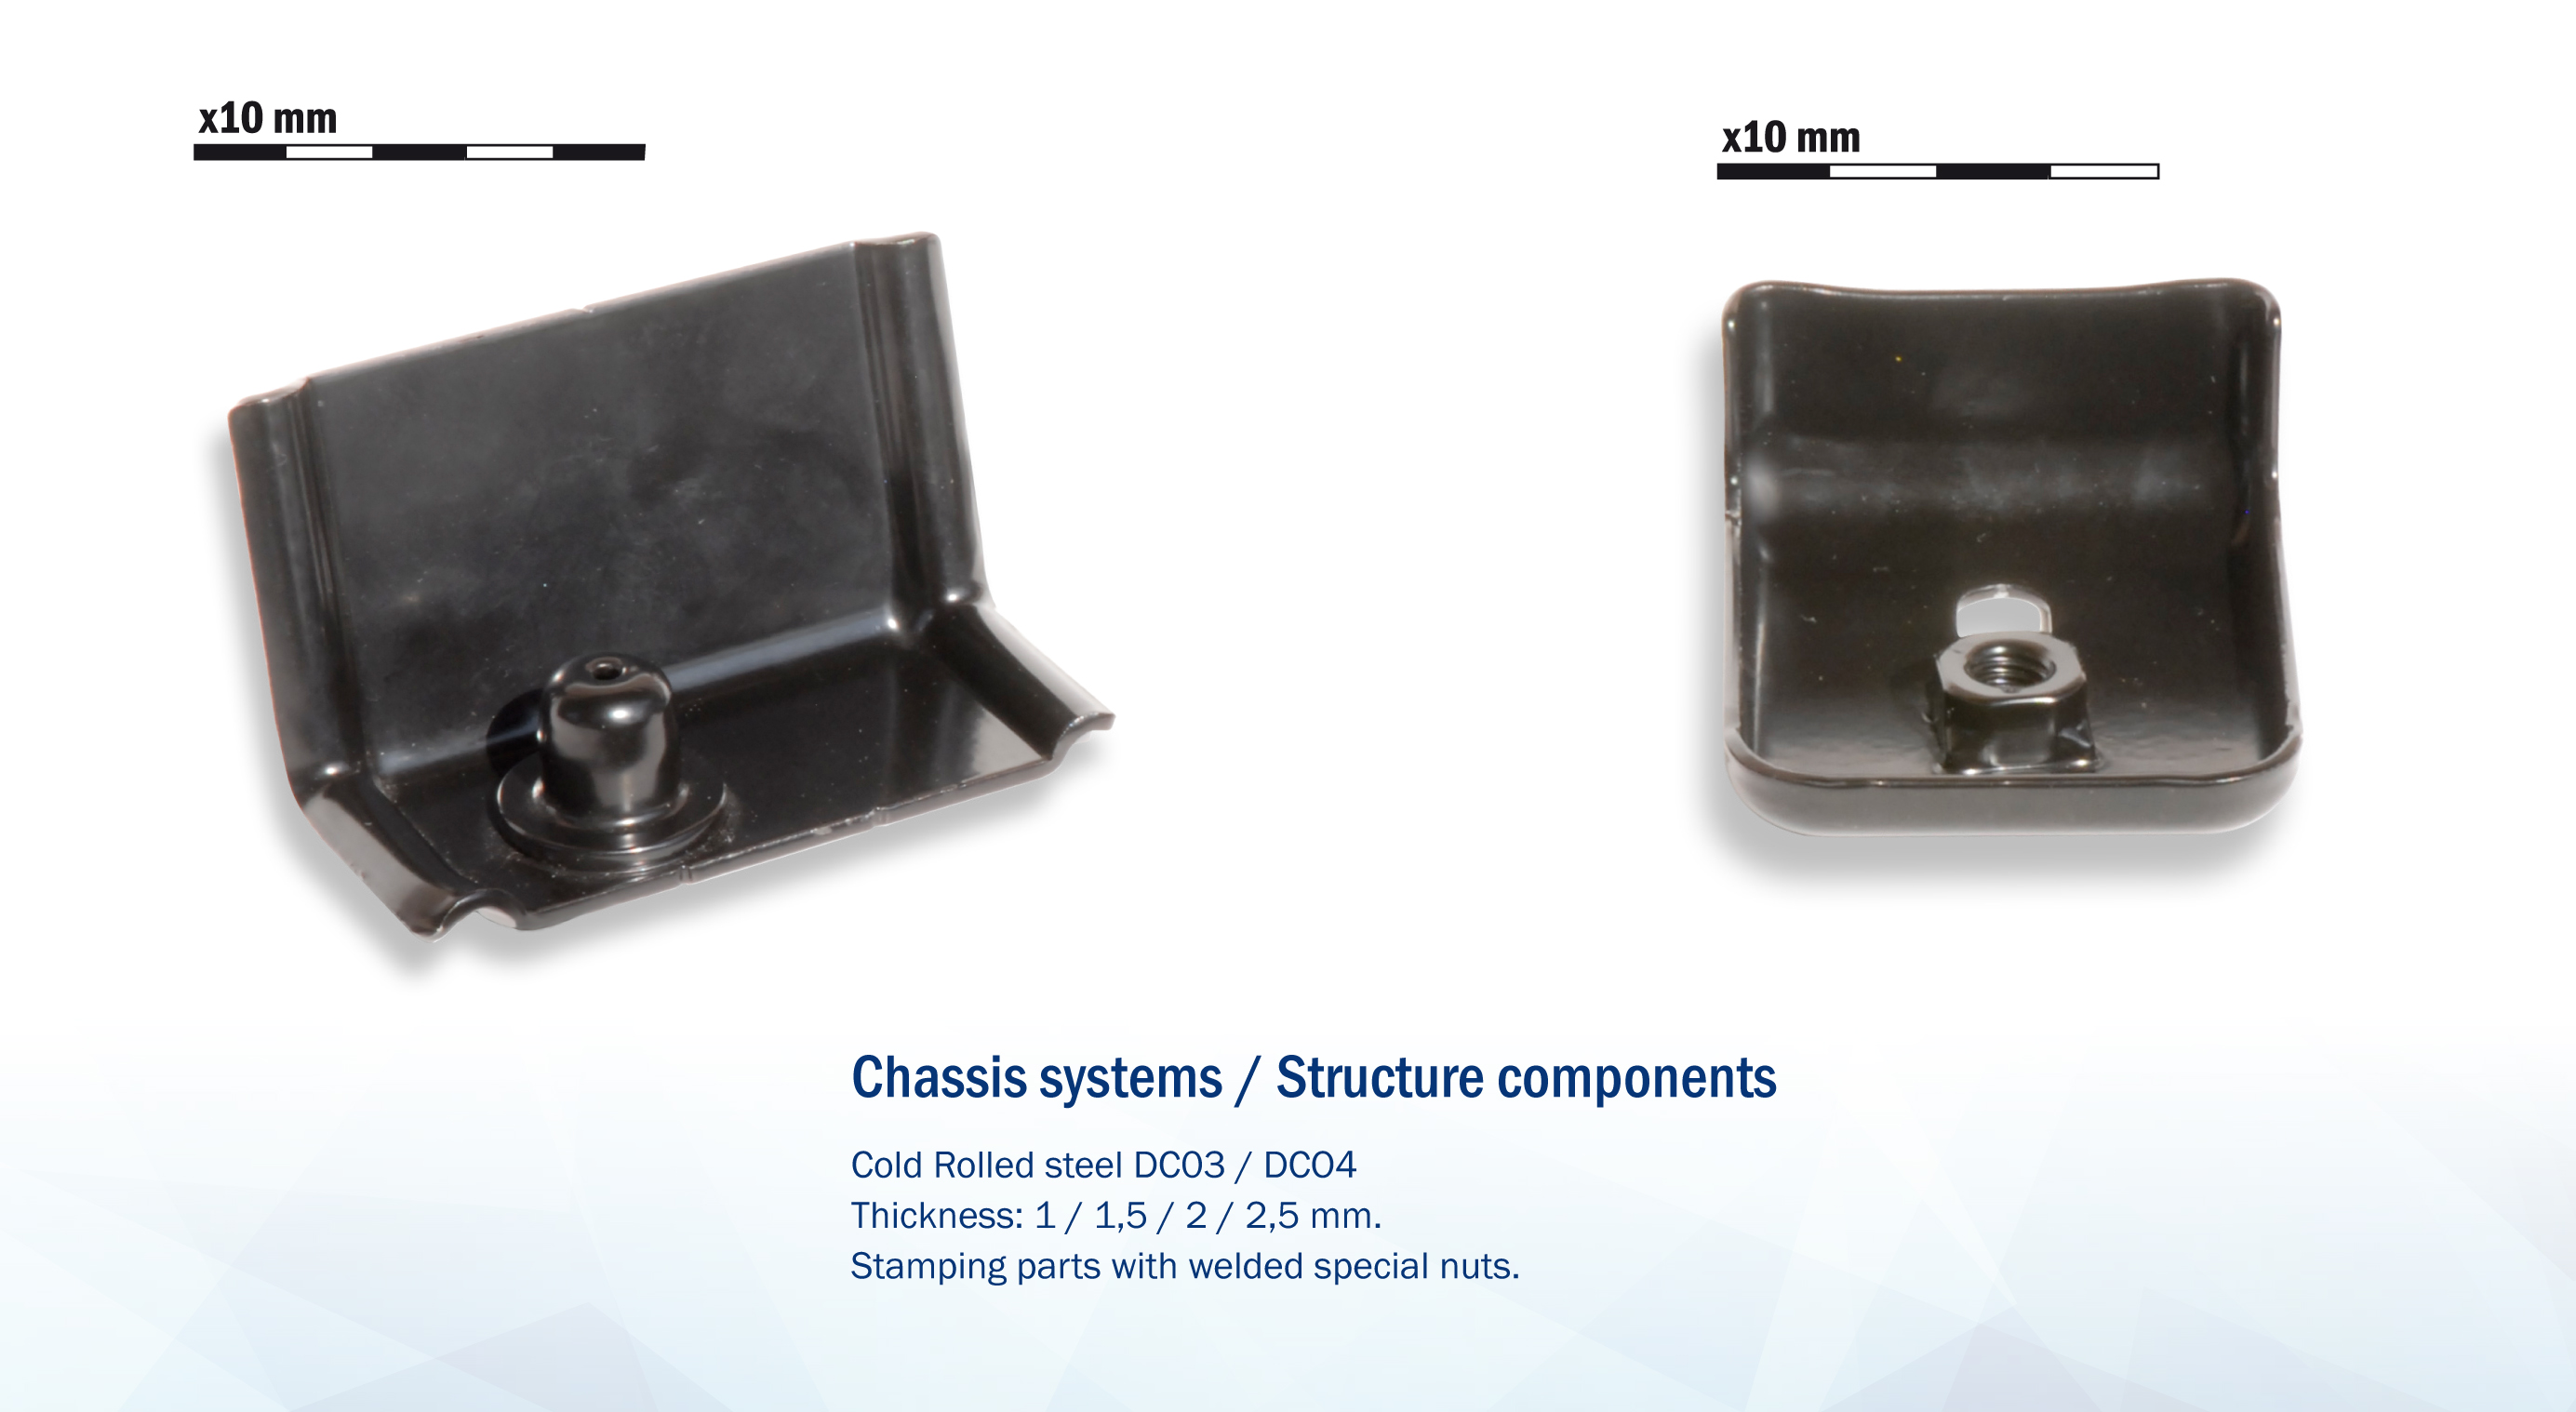 Chassis systems / Structure components